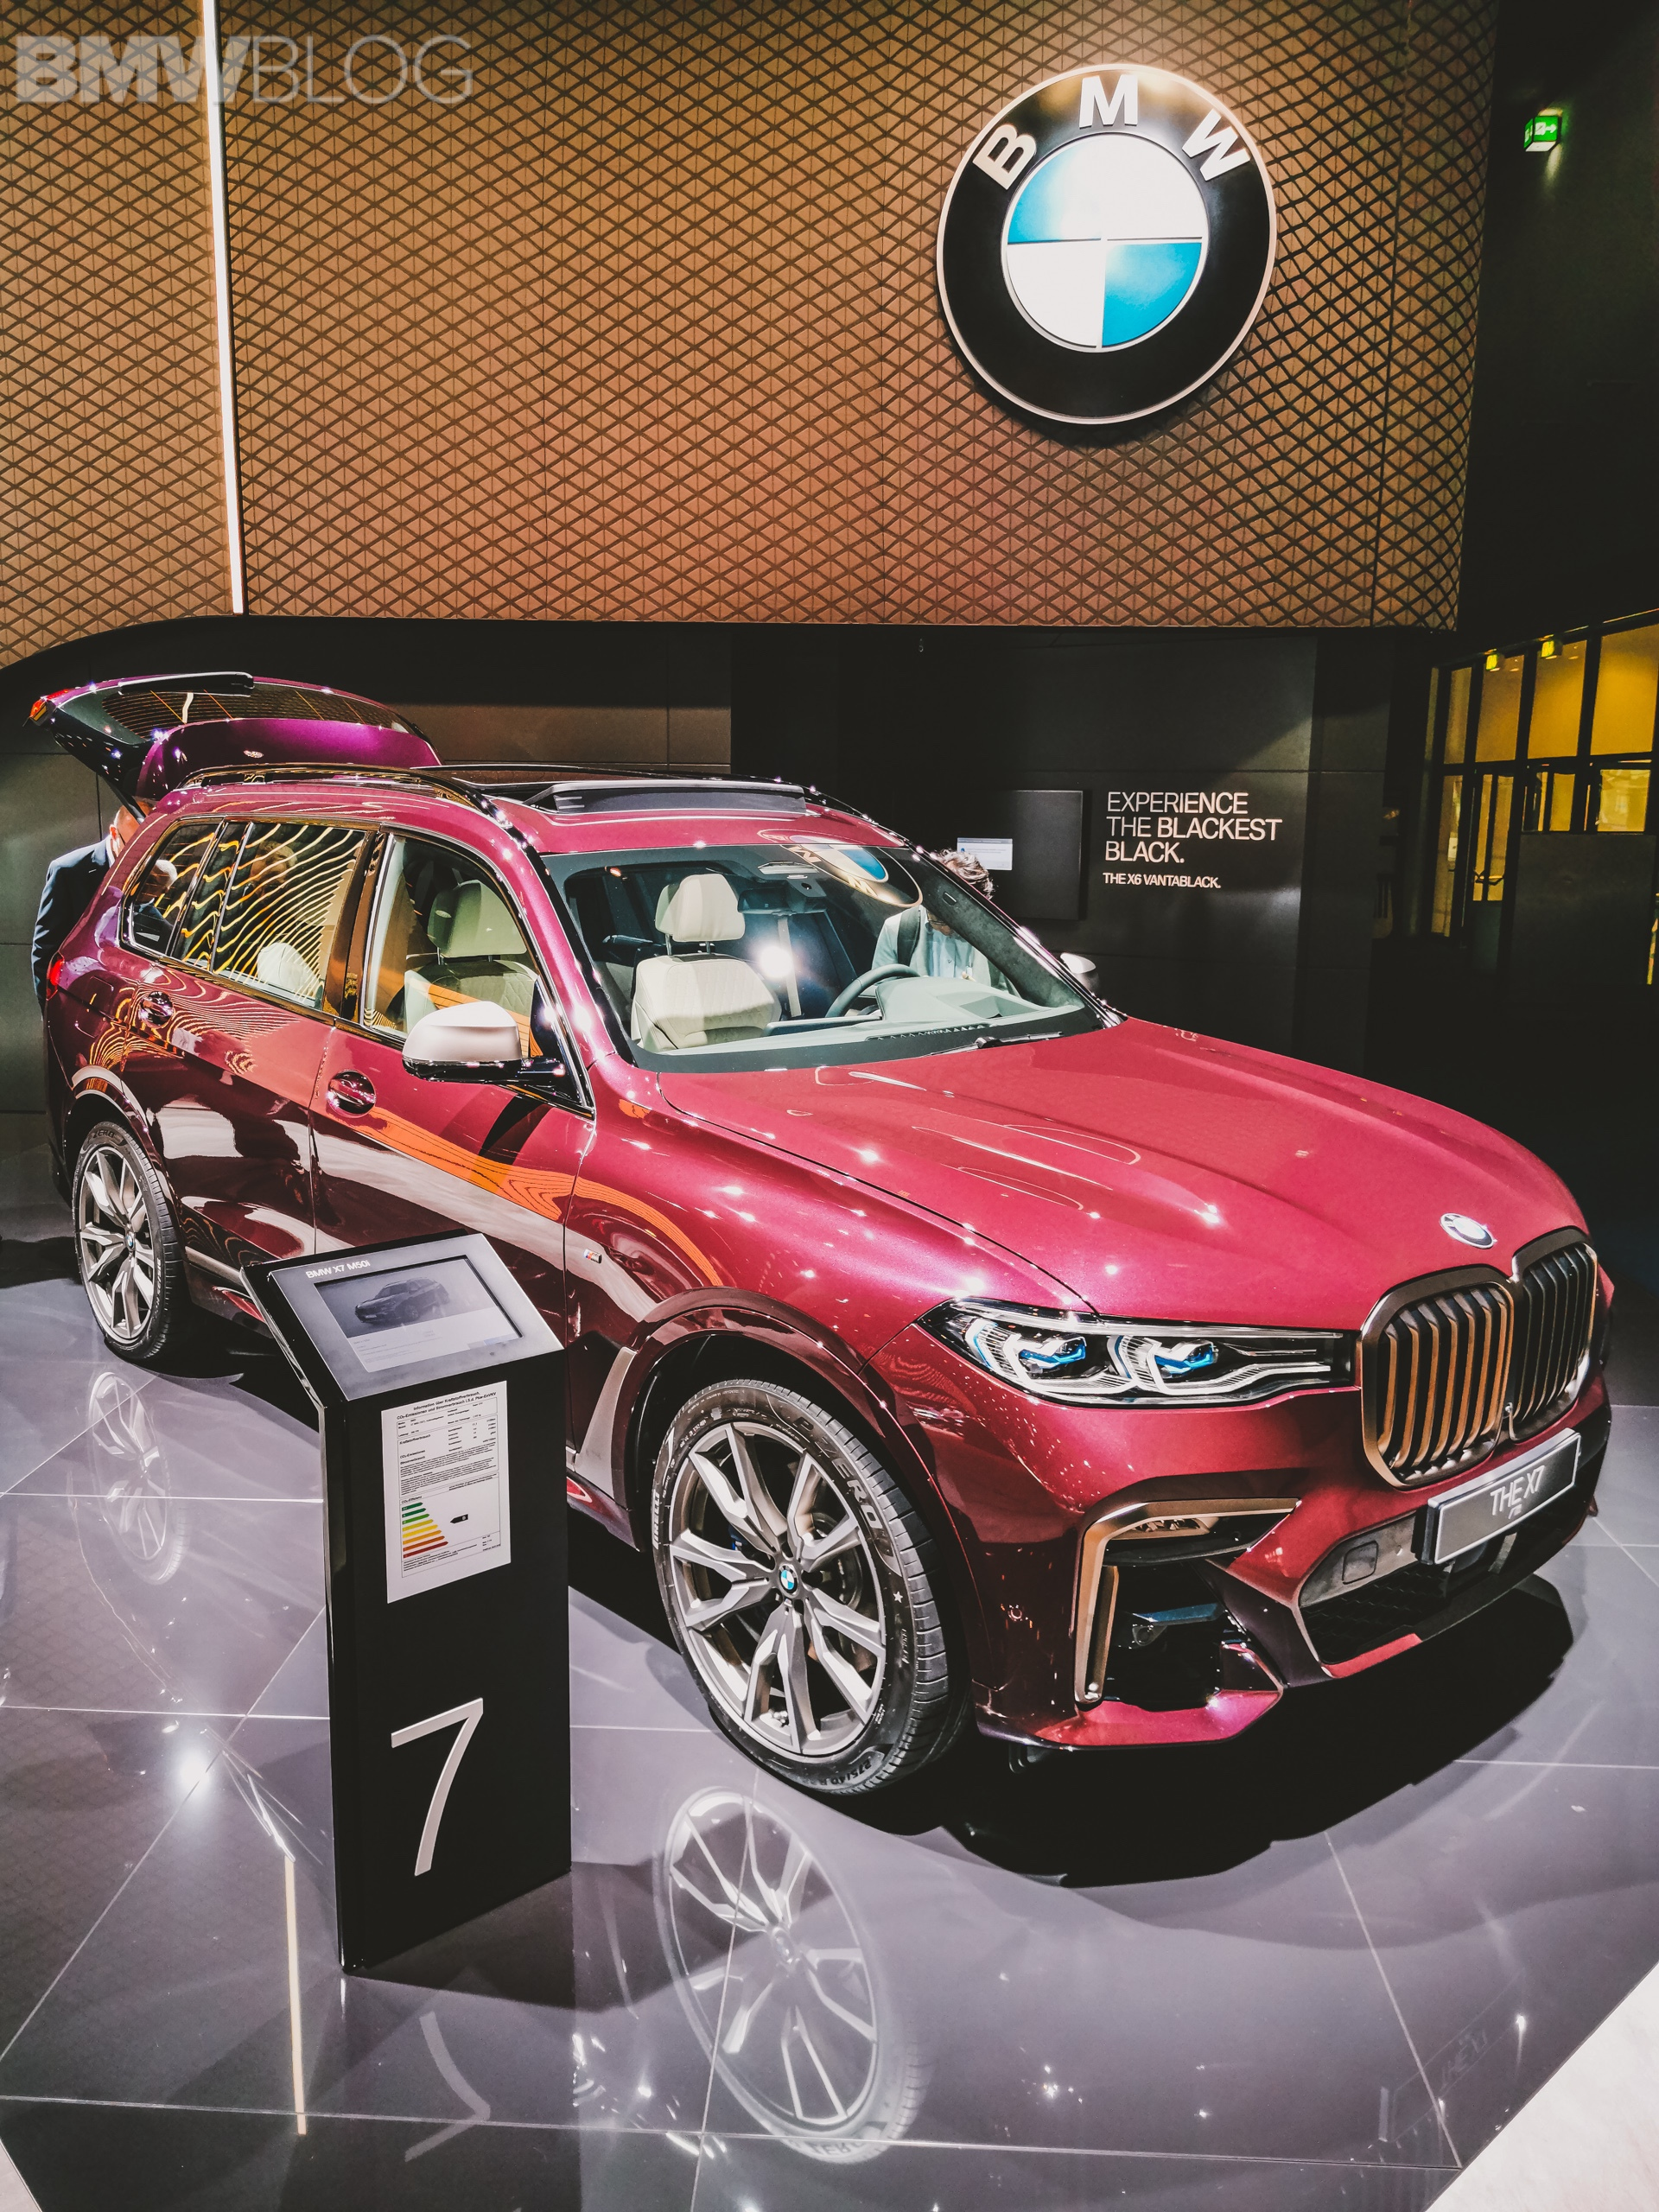 2019 Iaa Bmw X7 In The Bmw Individual Ametrin Metallic Color